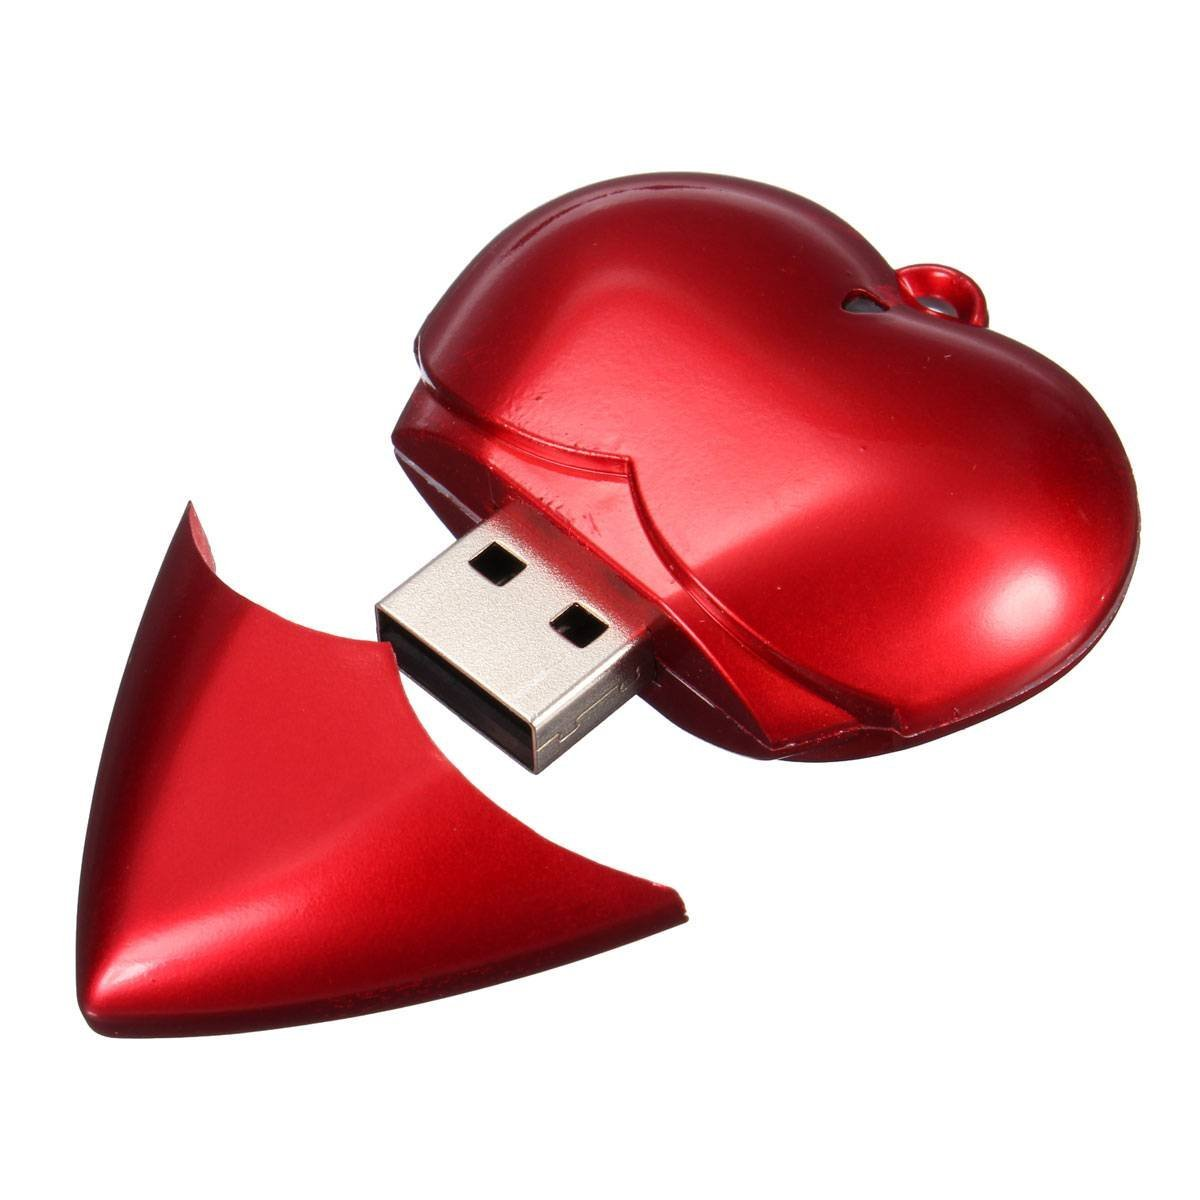 USB Stick Memory Stick 2.0 Heart Shape